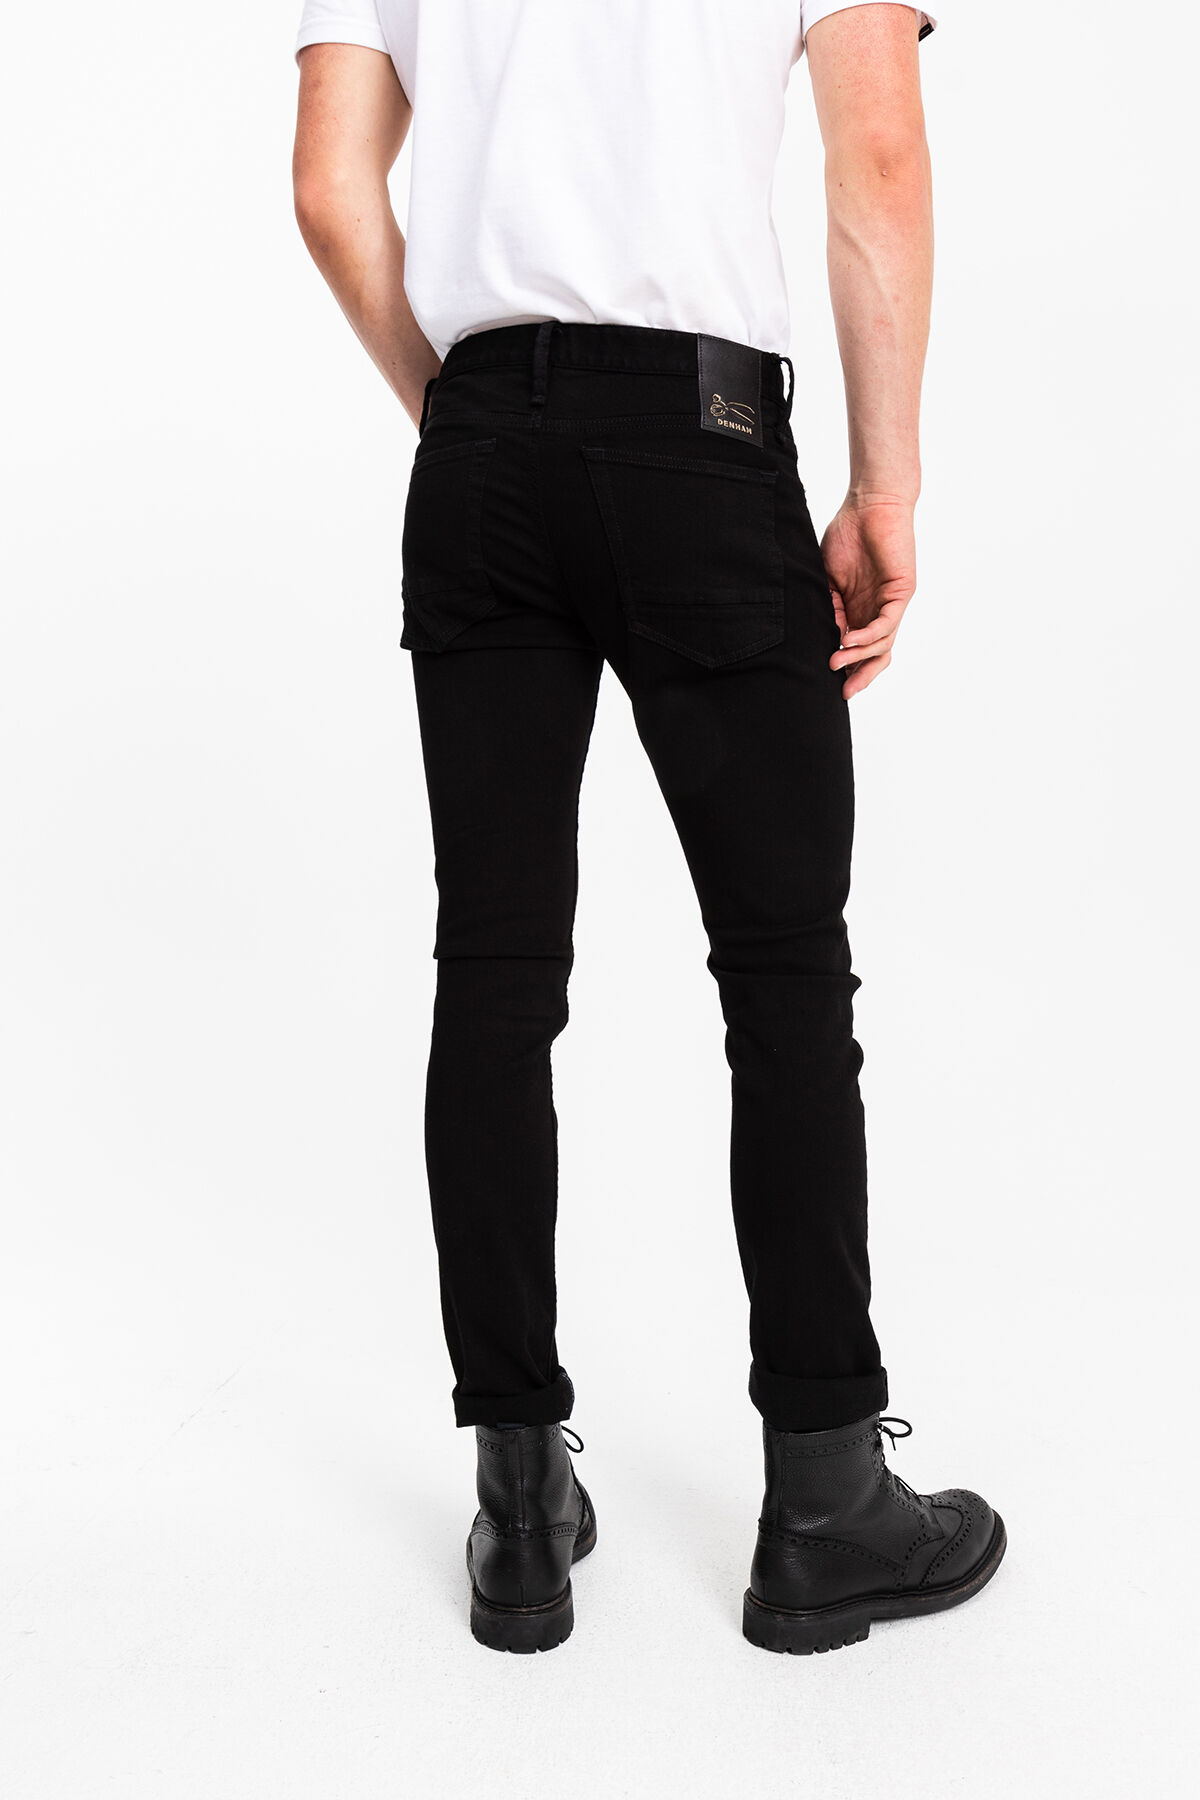 BOLT LEFTHAND DOUBLE BLACK DENIM - Skinny Fit